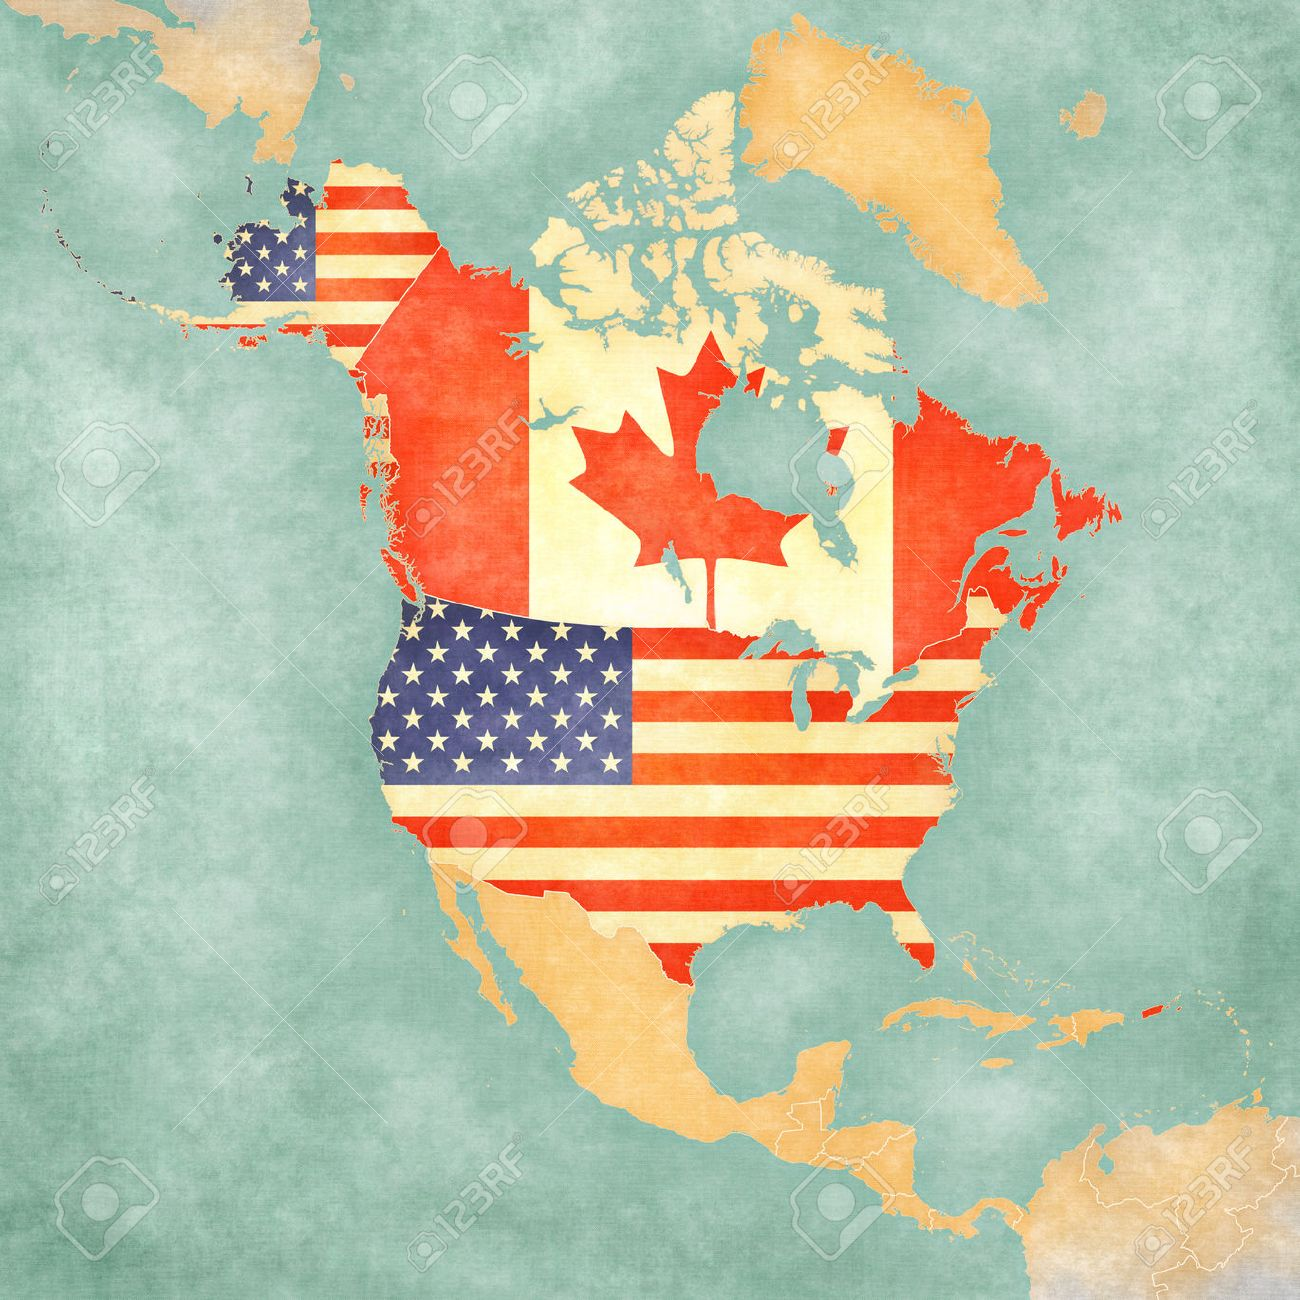 Map Us Border With Canada Map Images USA And Canada On The - Maps of america and canada